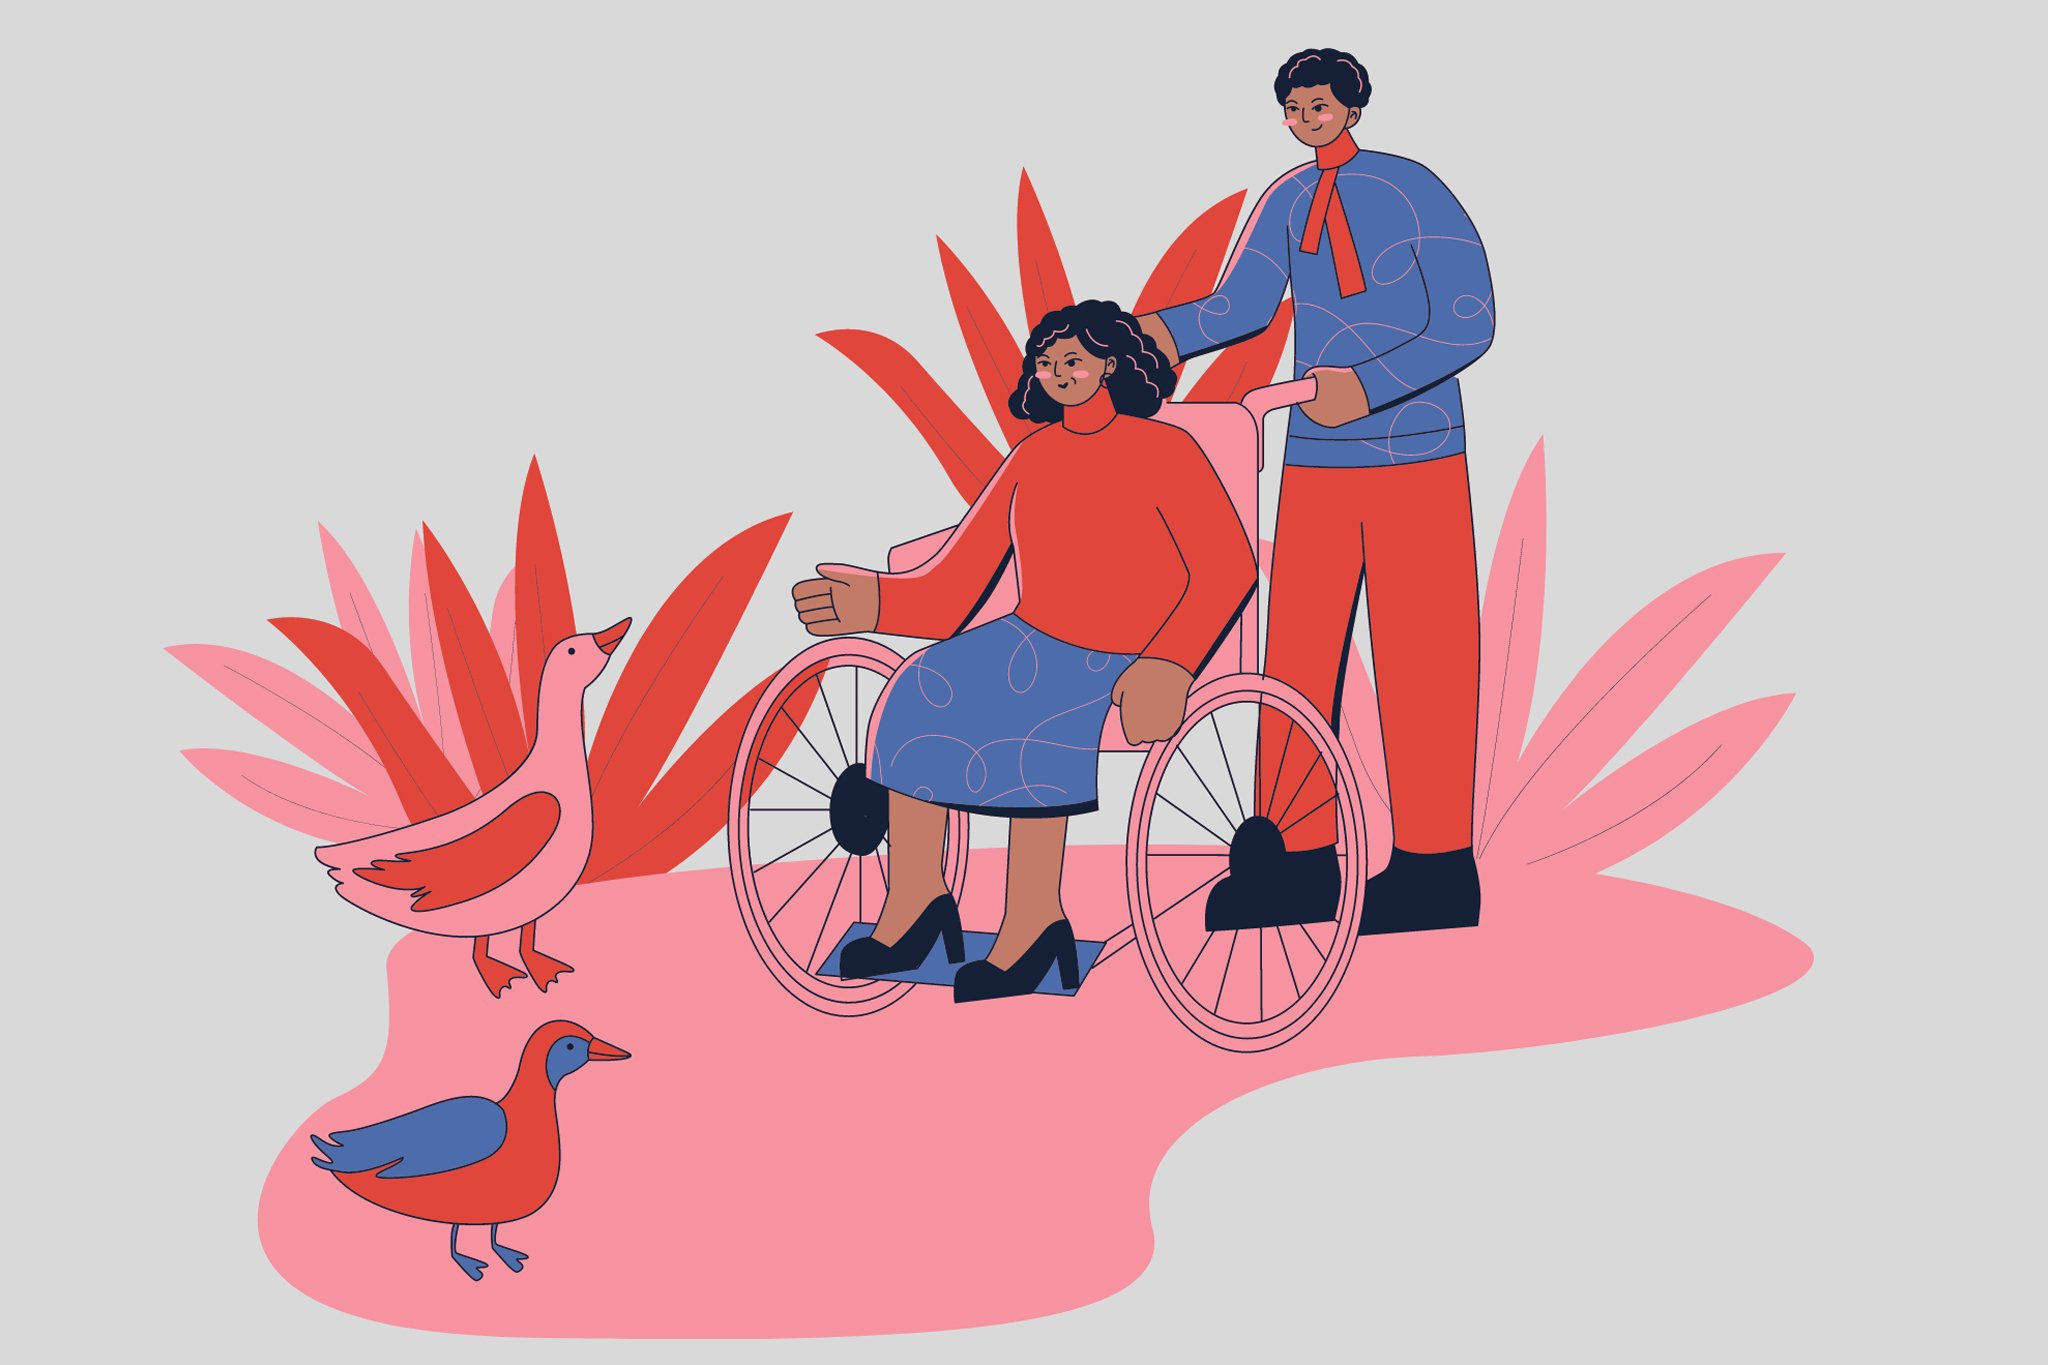 Colorful illustration with pink, red, and blue of two people of color enjoying nature together. One person is in a wheelchair and wearing a skirt, while the other is pushing their chair and wearing a shirt and pants.